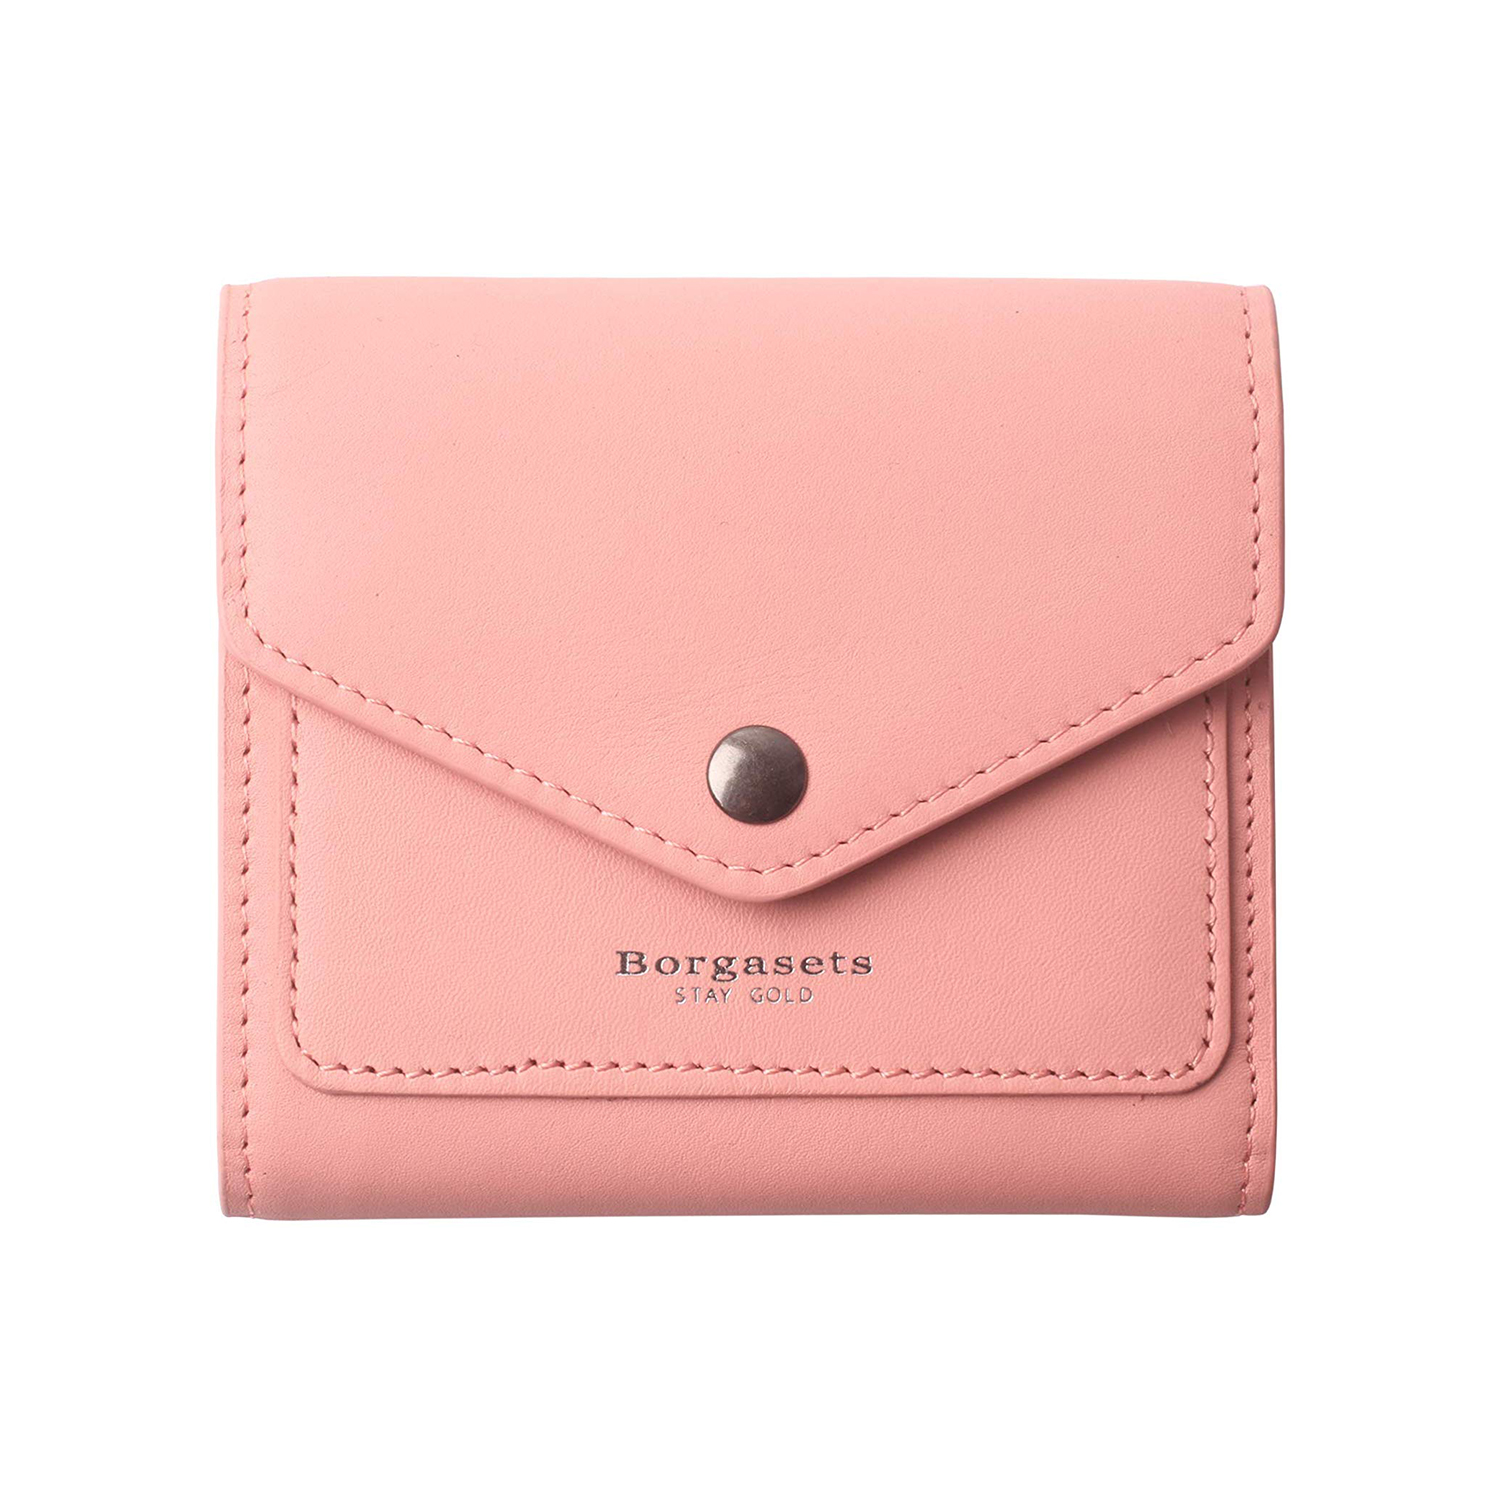 Small Leather Wallet for Women